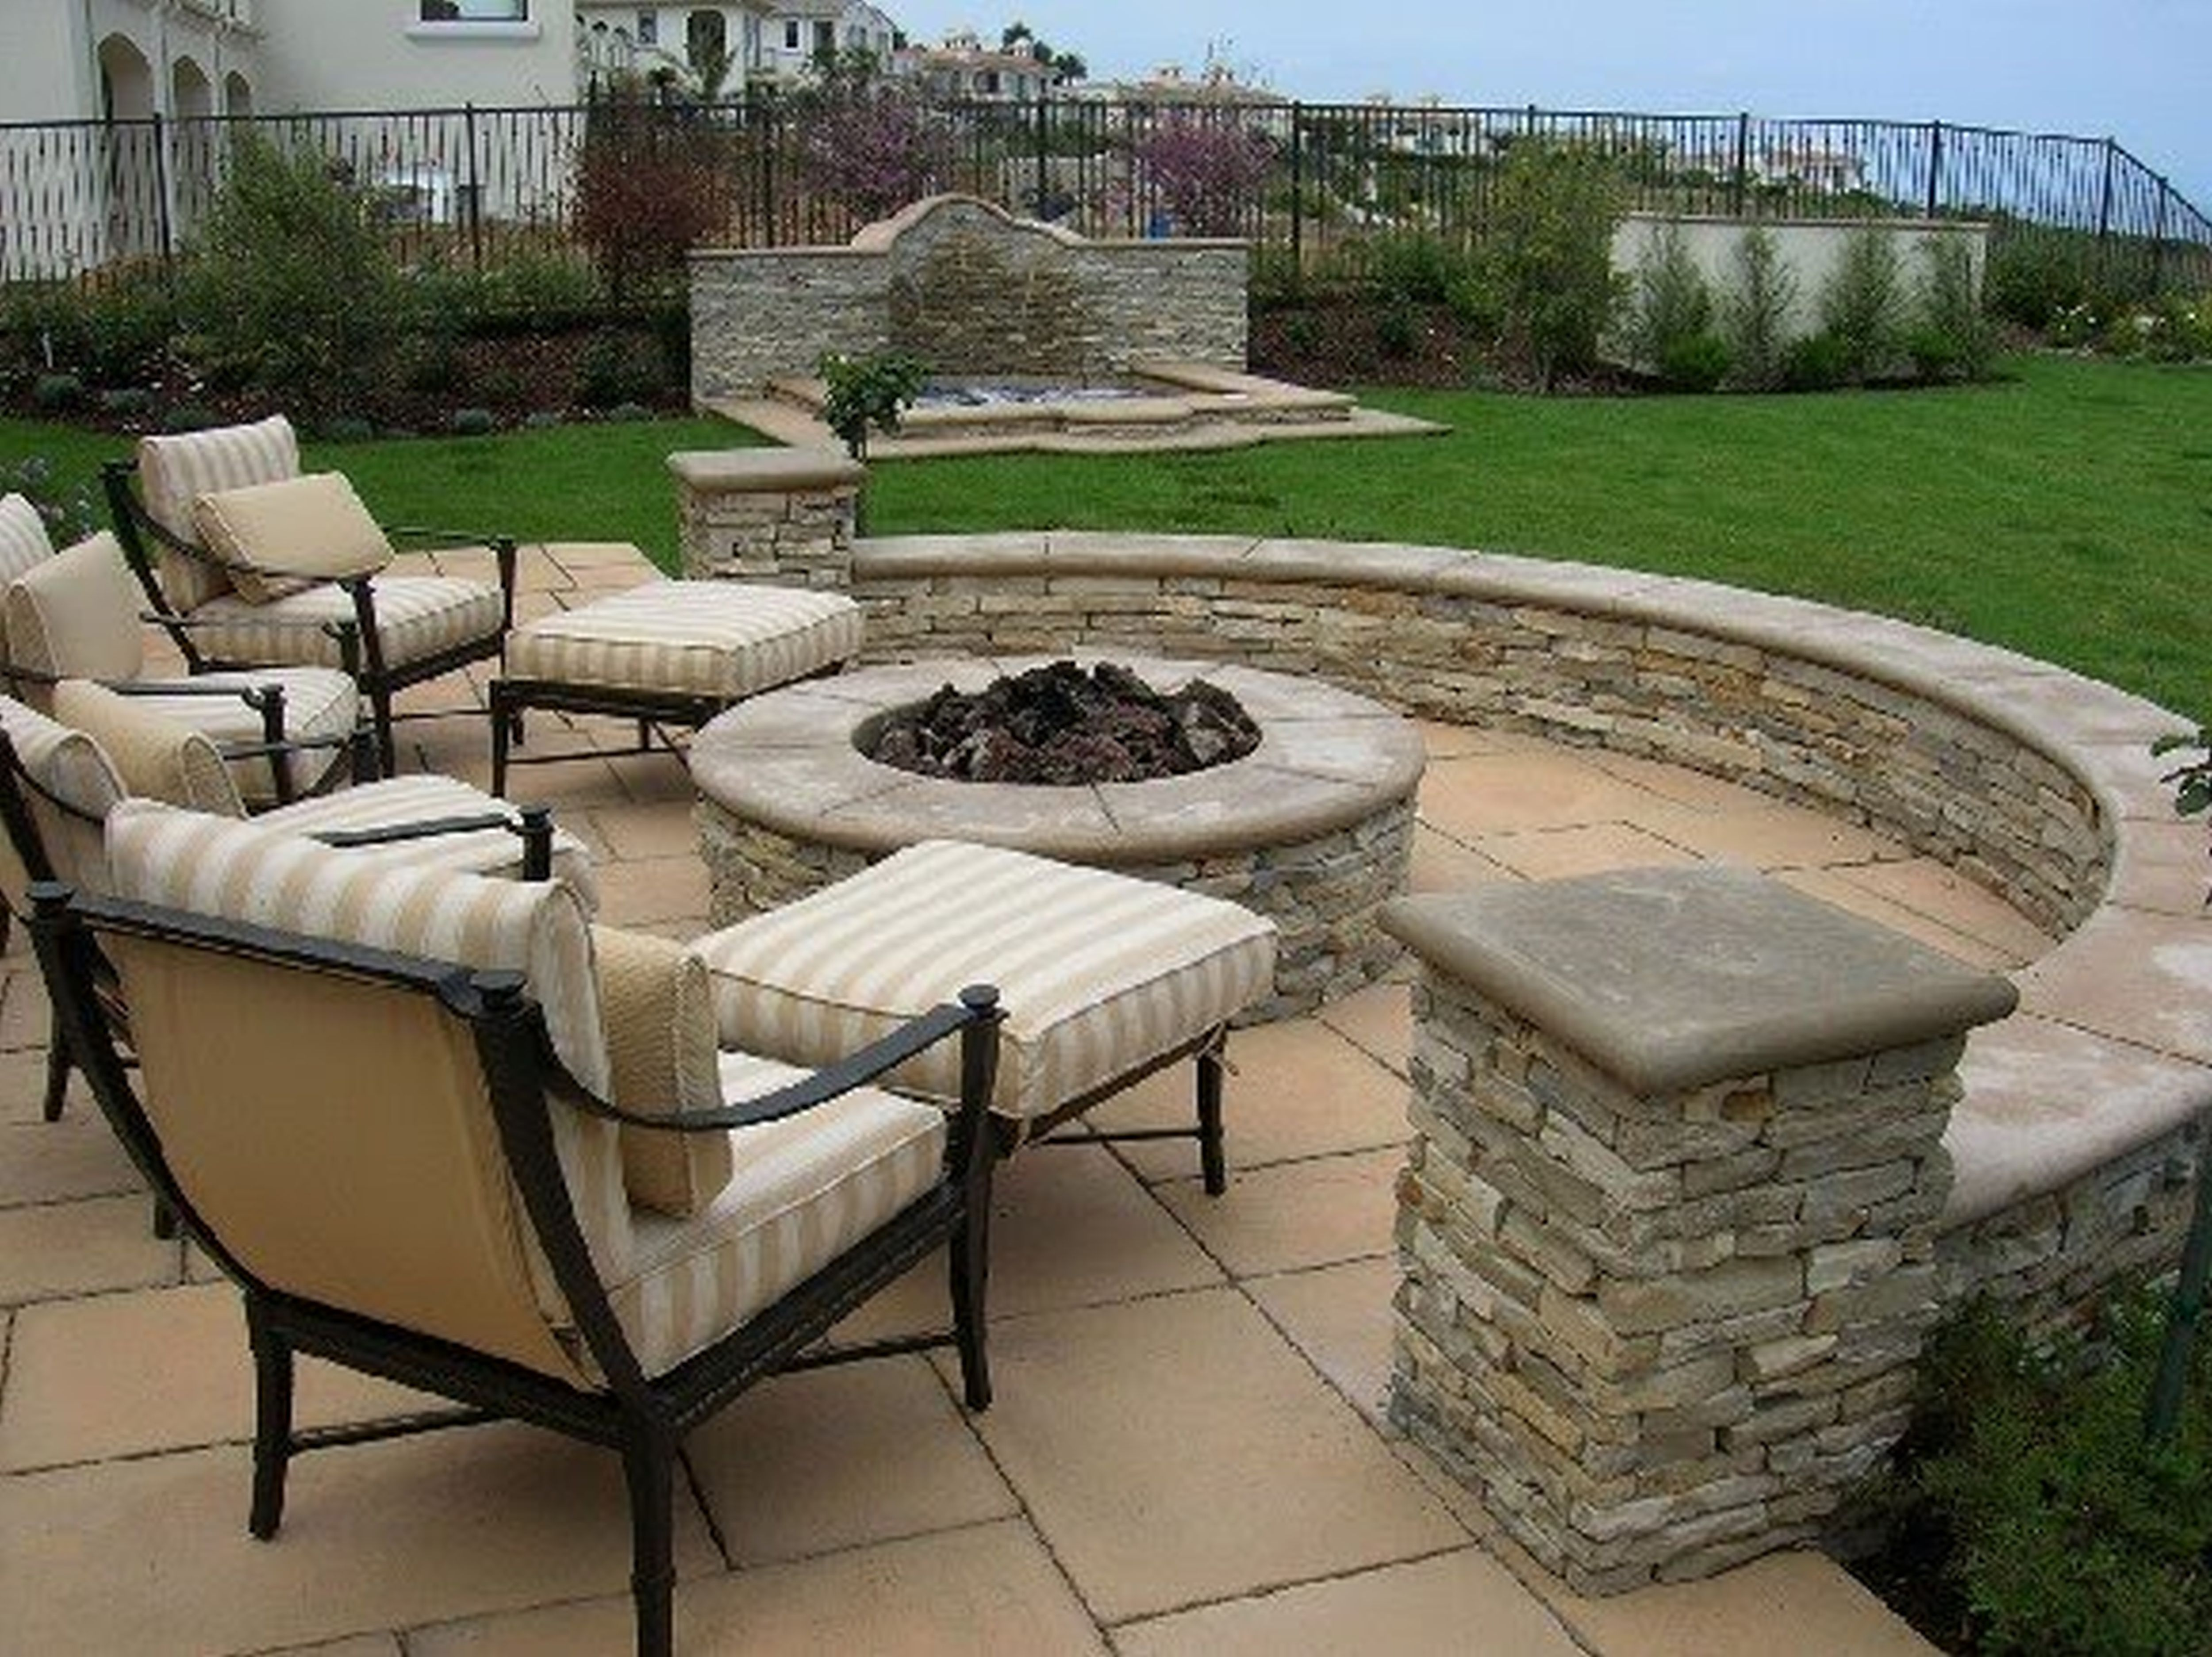 Classic Style Arch Patio with Rounded Fireplace and Four Chairs with Ottomans